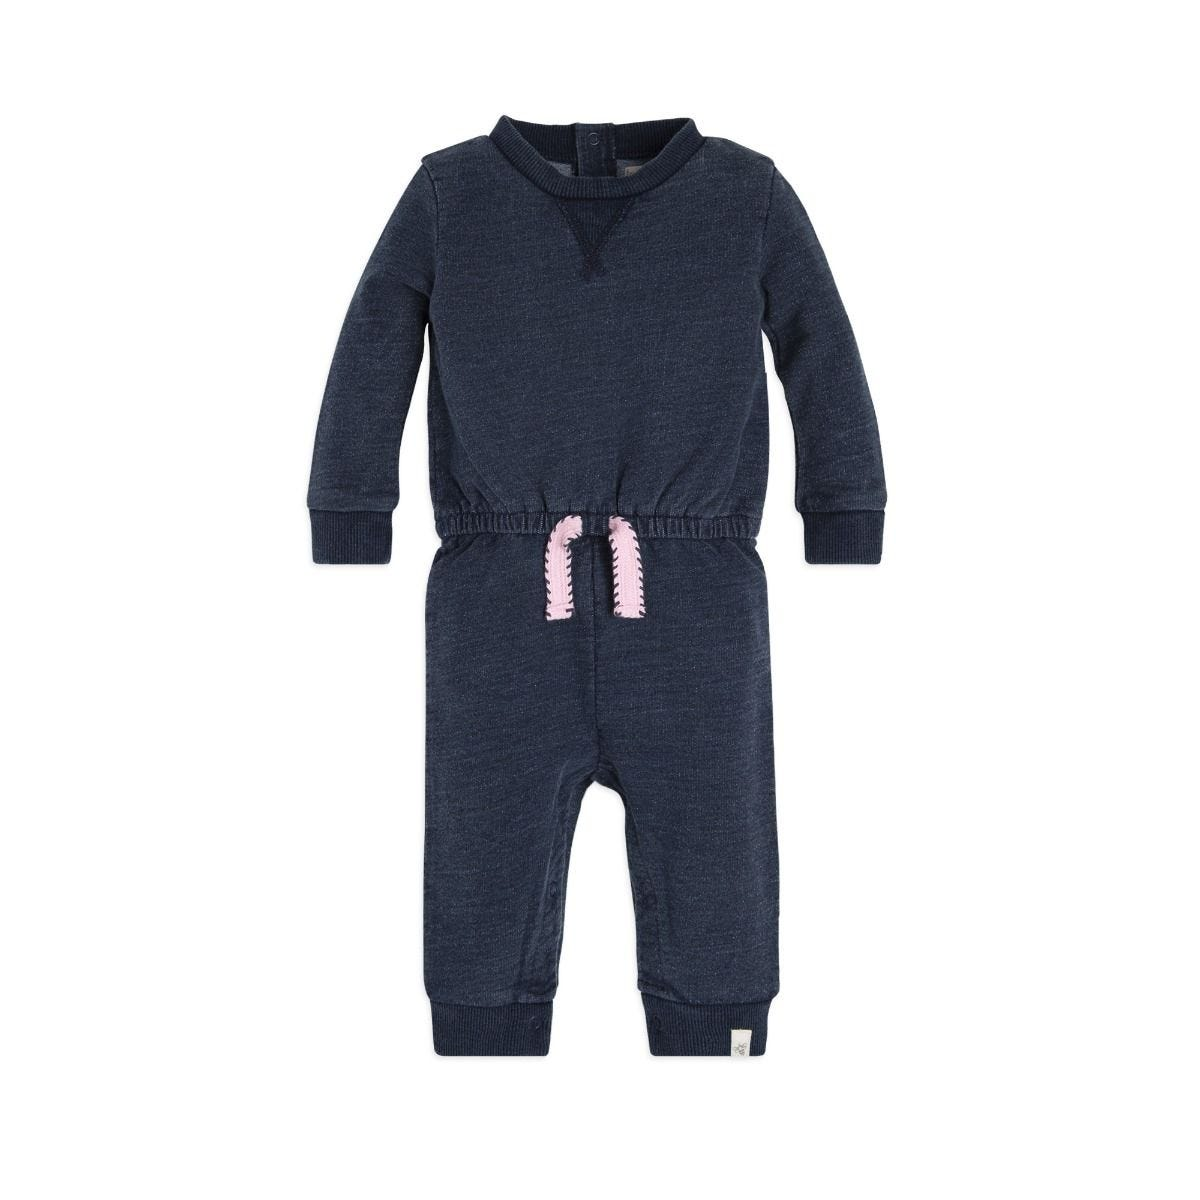 77f980a5968 French Terry Denim Wash Organic Baby One Piece Jumpsuit